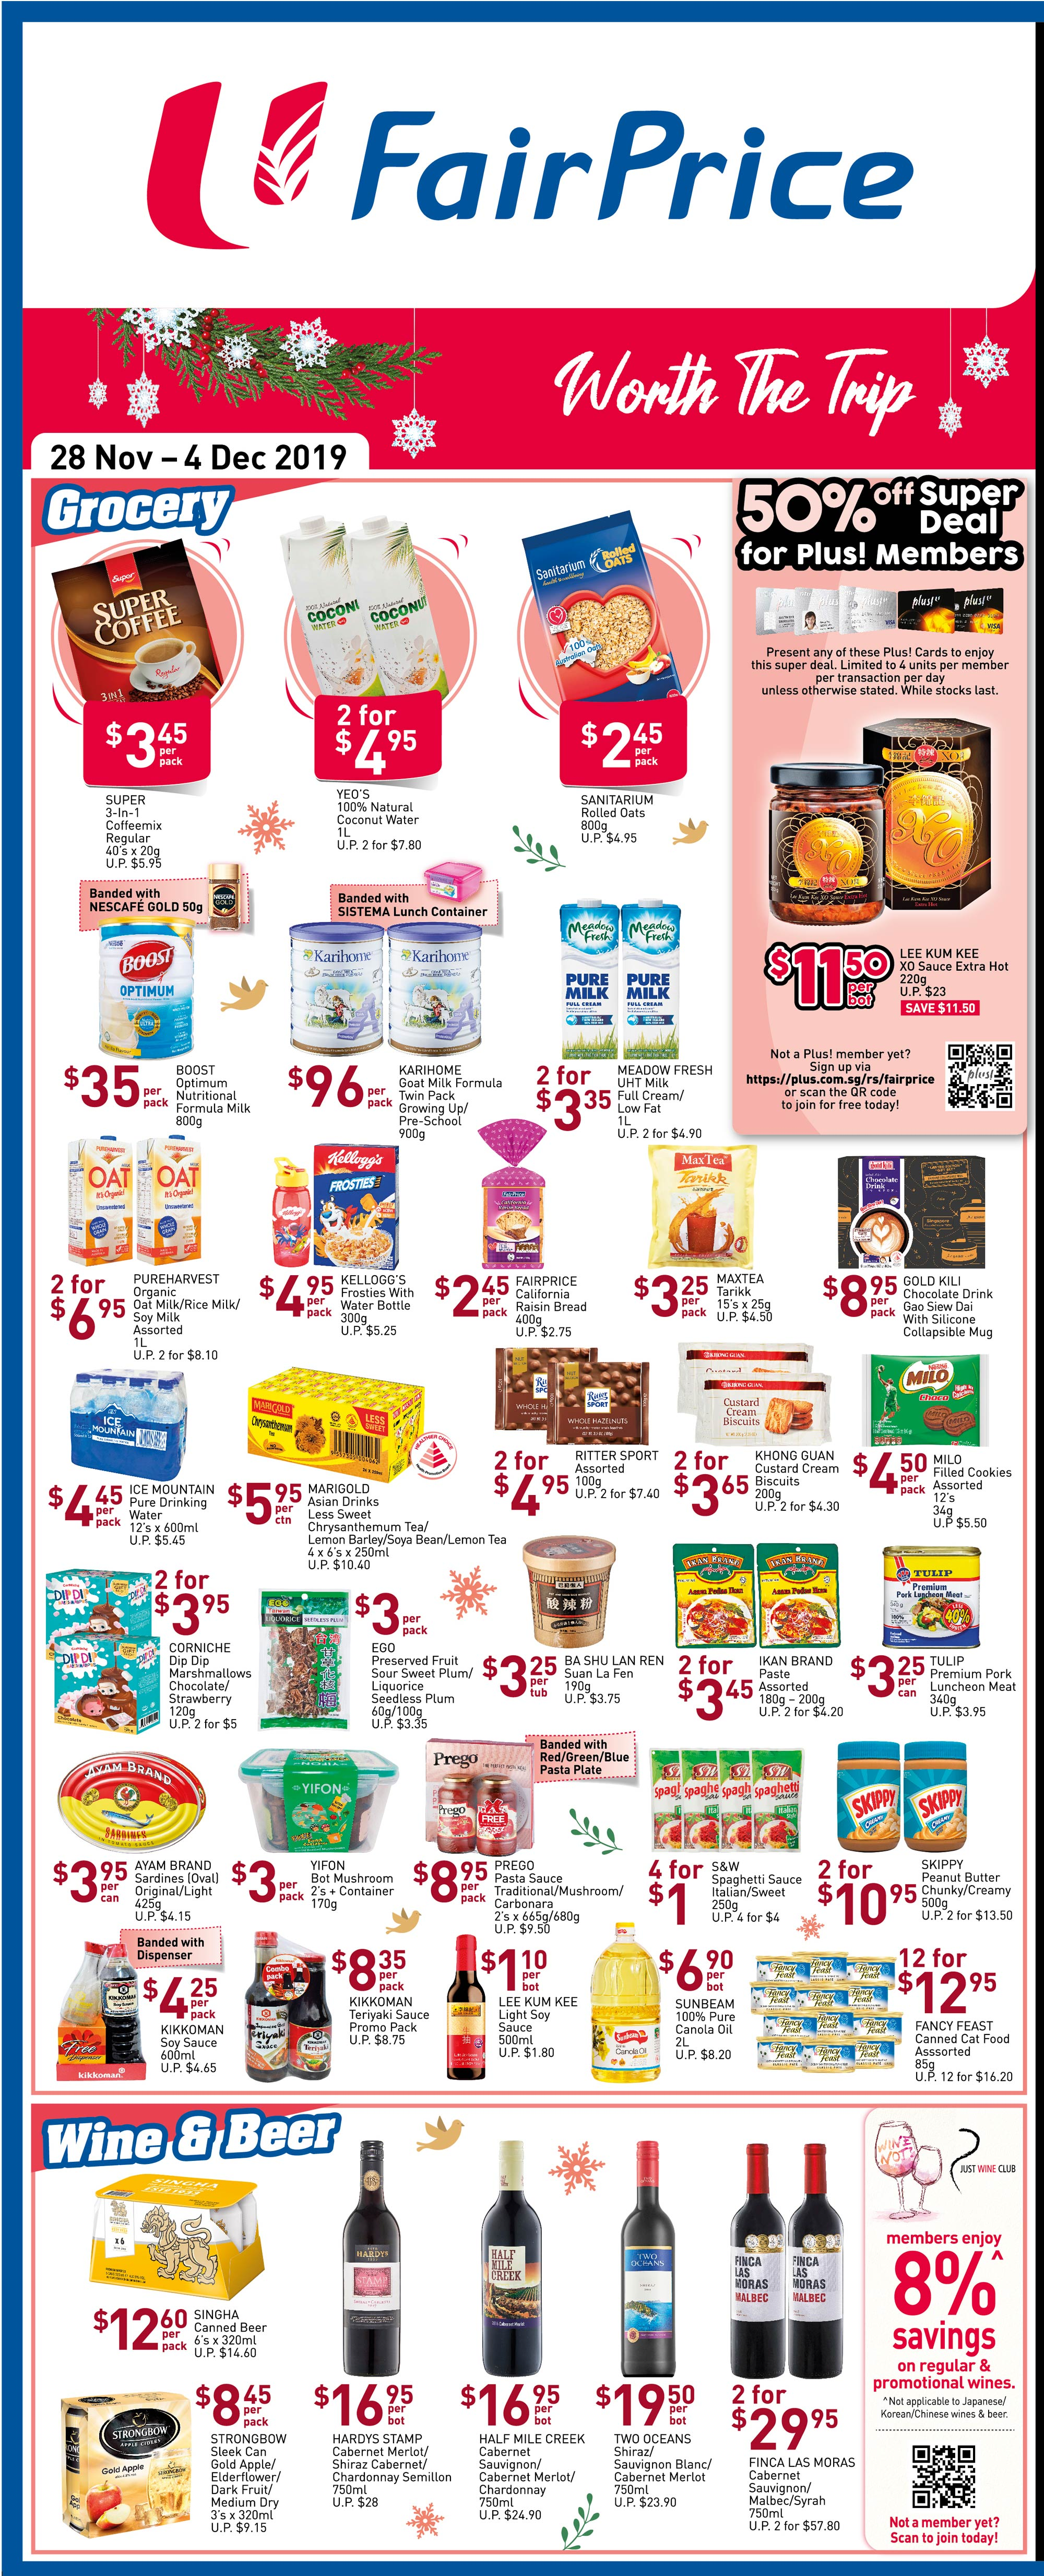 NTUC FairPrice Singapore Your Weekly Saver Promotions 28 Nov - 4 Dec 2019 | Why Not Deals 5 & Promotions